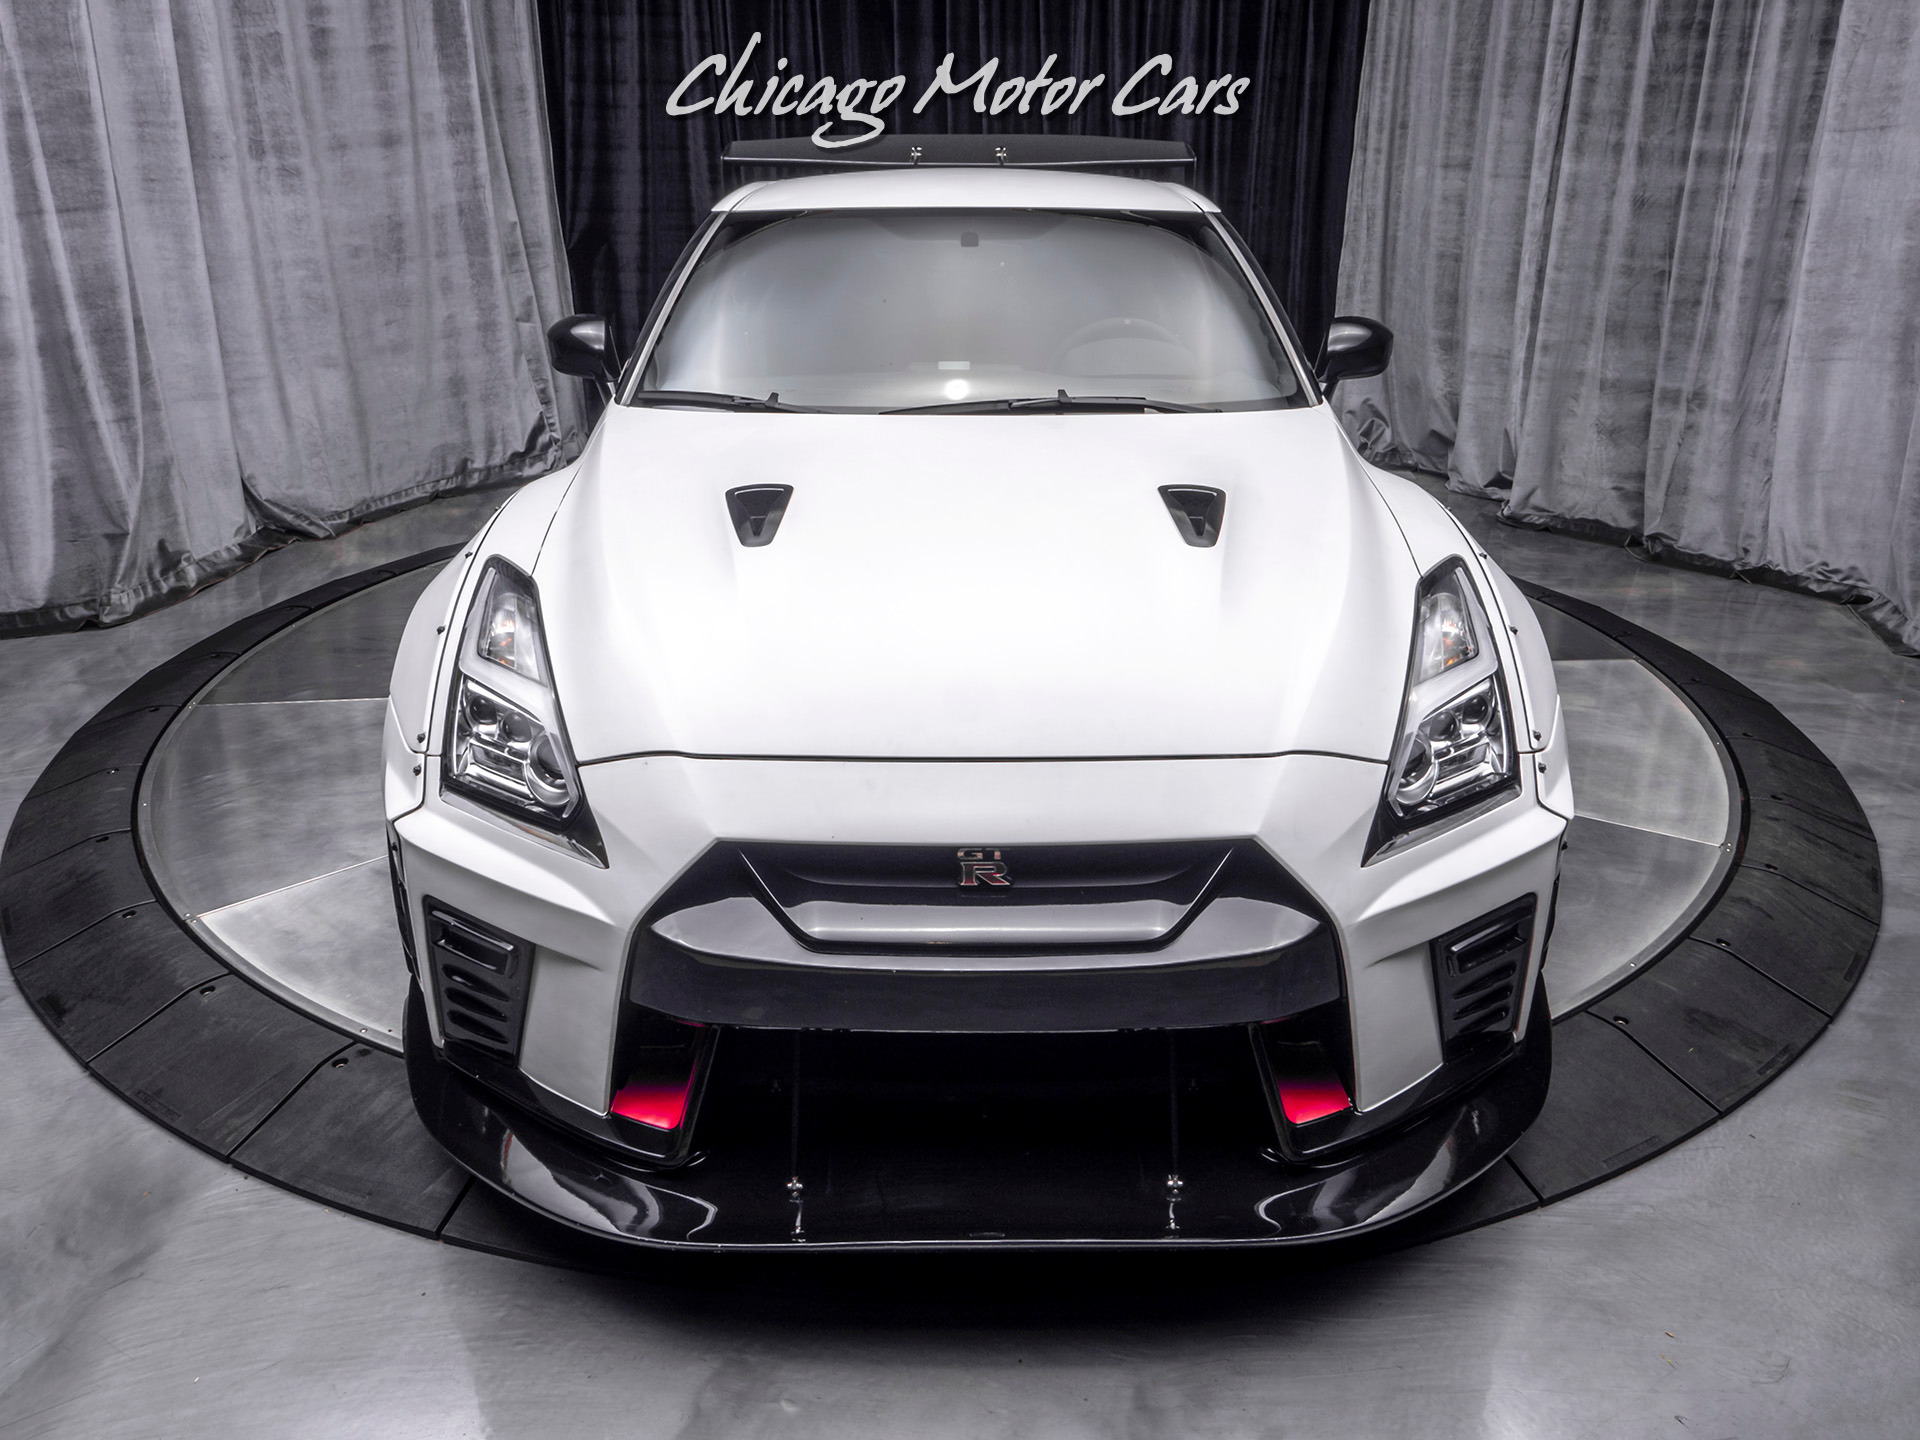 Used-2017-Nissan-GT-R-Premium-Coupe-WIDEBODYBAGGED-FULL-BOLT-ON-650WHP